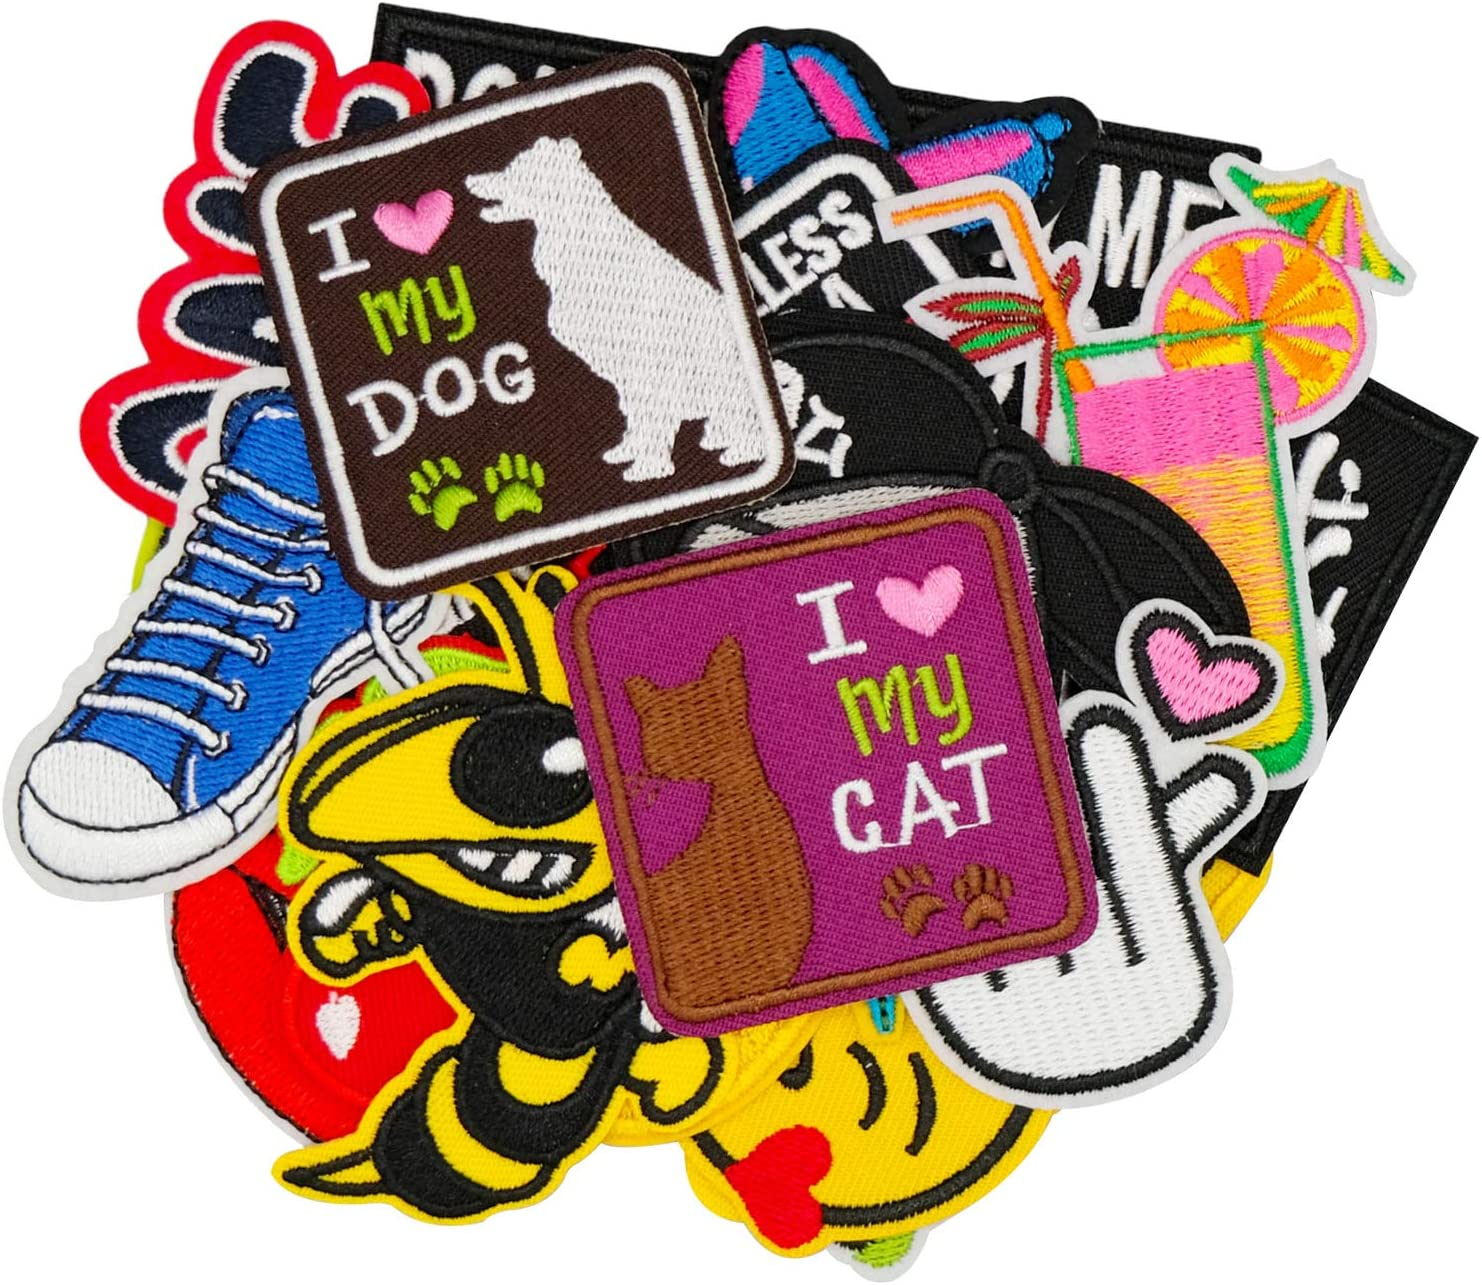 Wappen-03-70Pcs Wlkq Wappen-03 Embroidered Patch Accessories Assorted Size DIY Patches Sew On//Iron On Patches Applique for Jackets Jeans Pants Backpacks Clothes 70Pcs